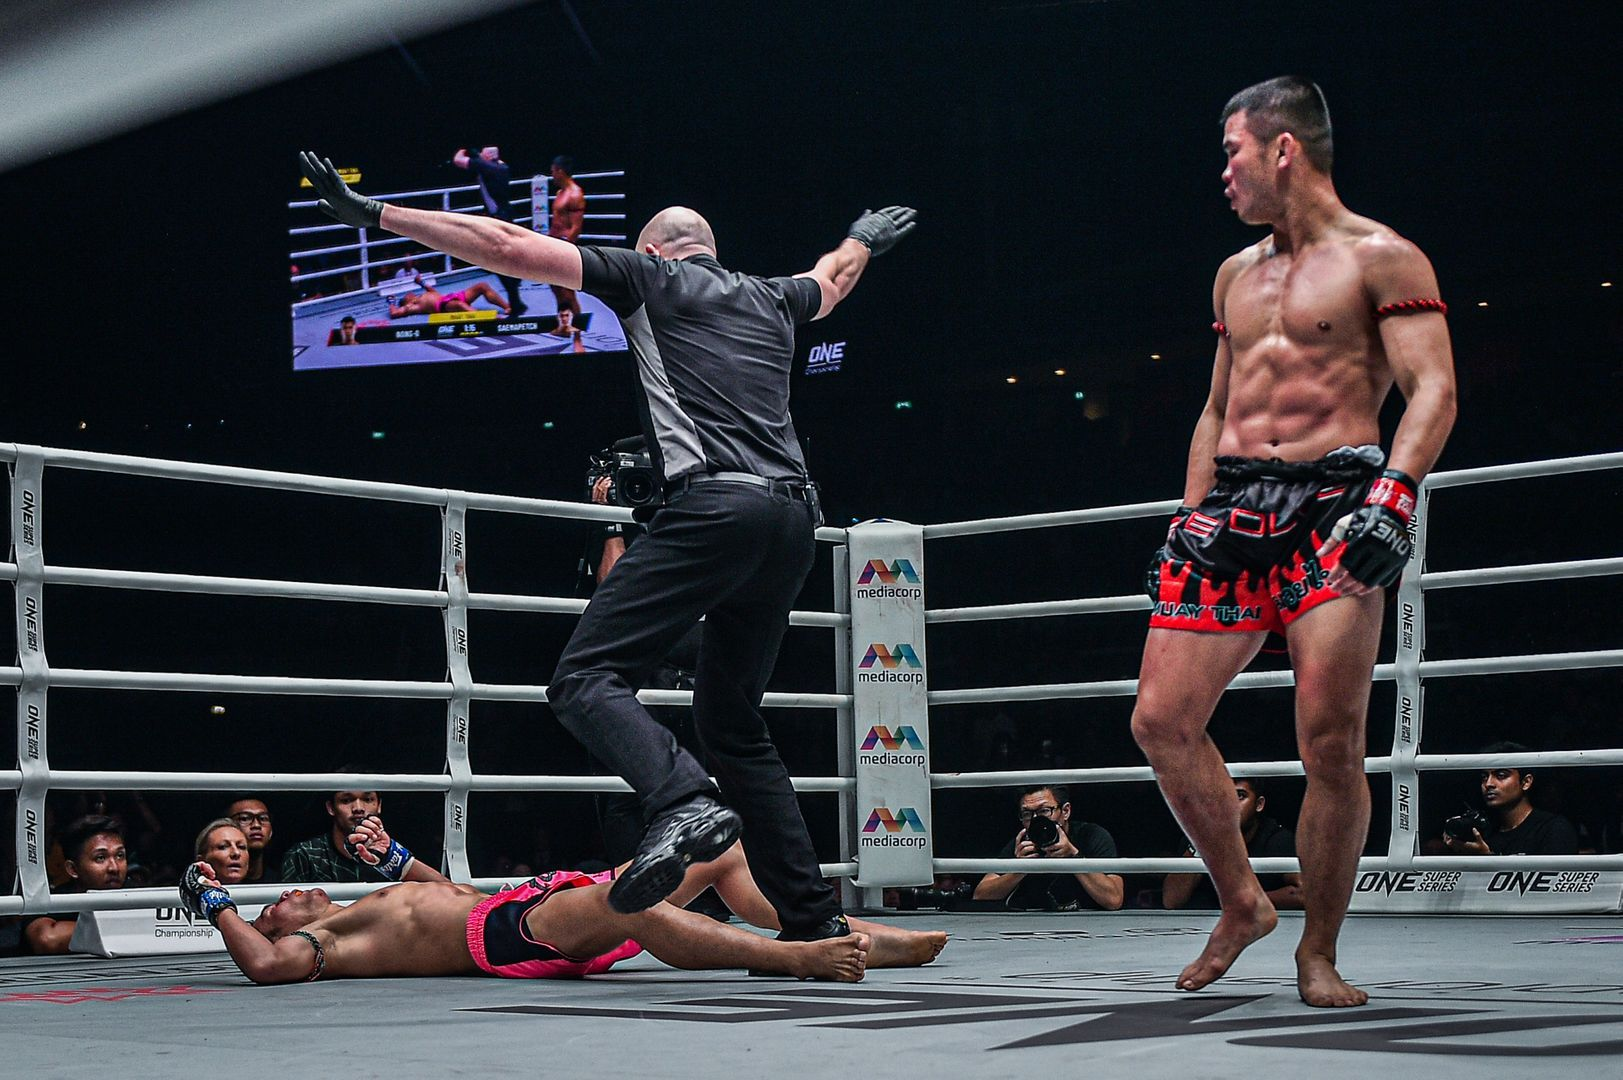 Nong-O Gaiyanghadao kncoks out Saemapetch Fairtex at ONE EDGE OF GREATNESS